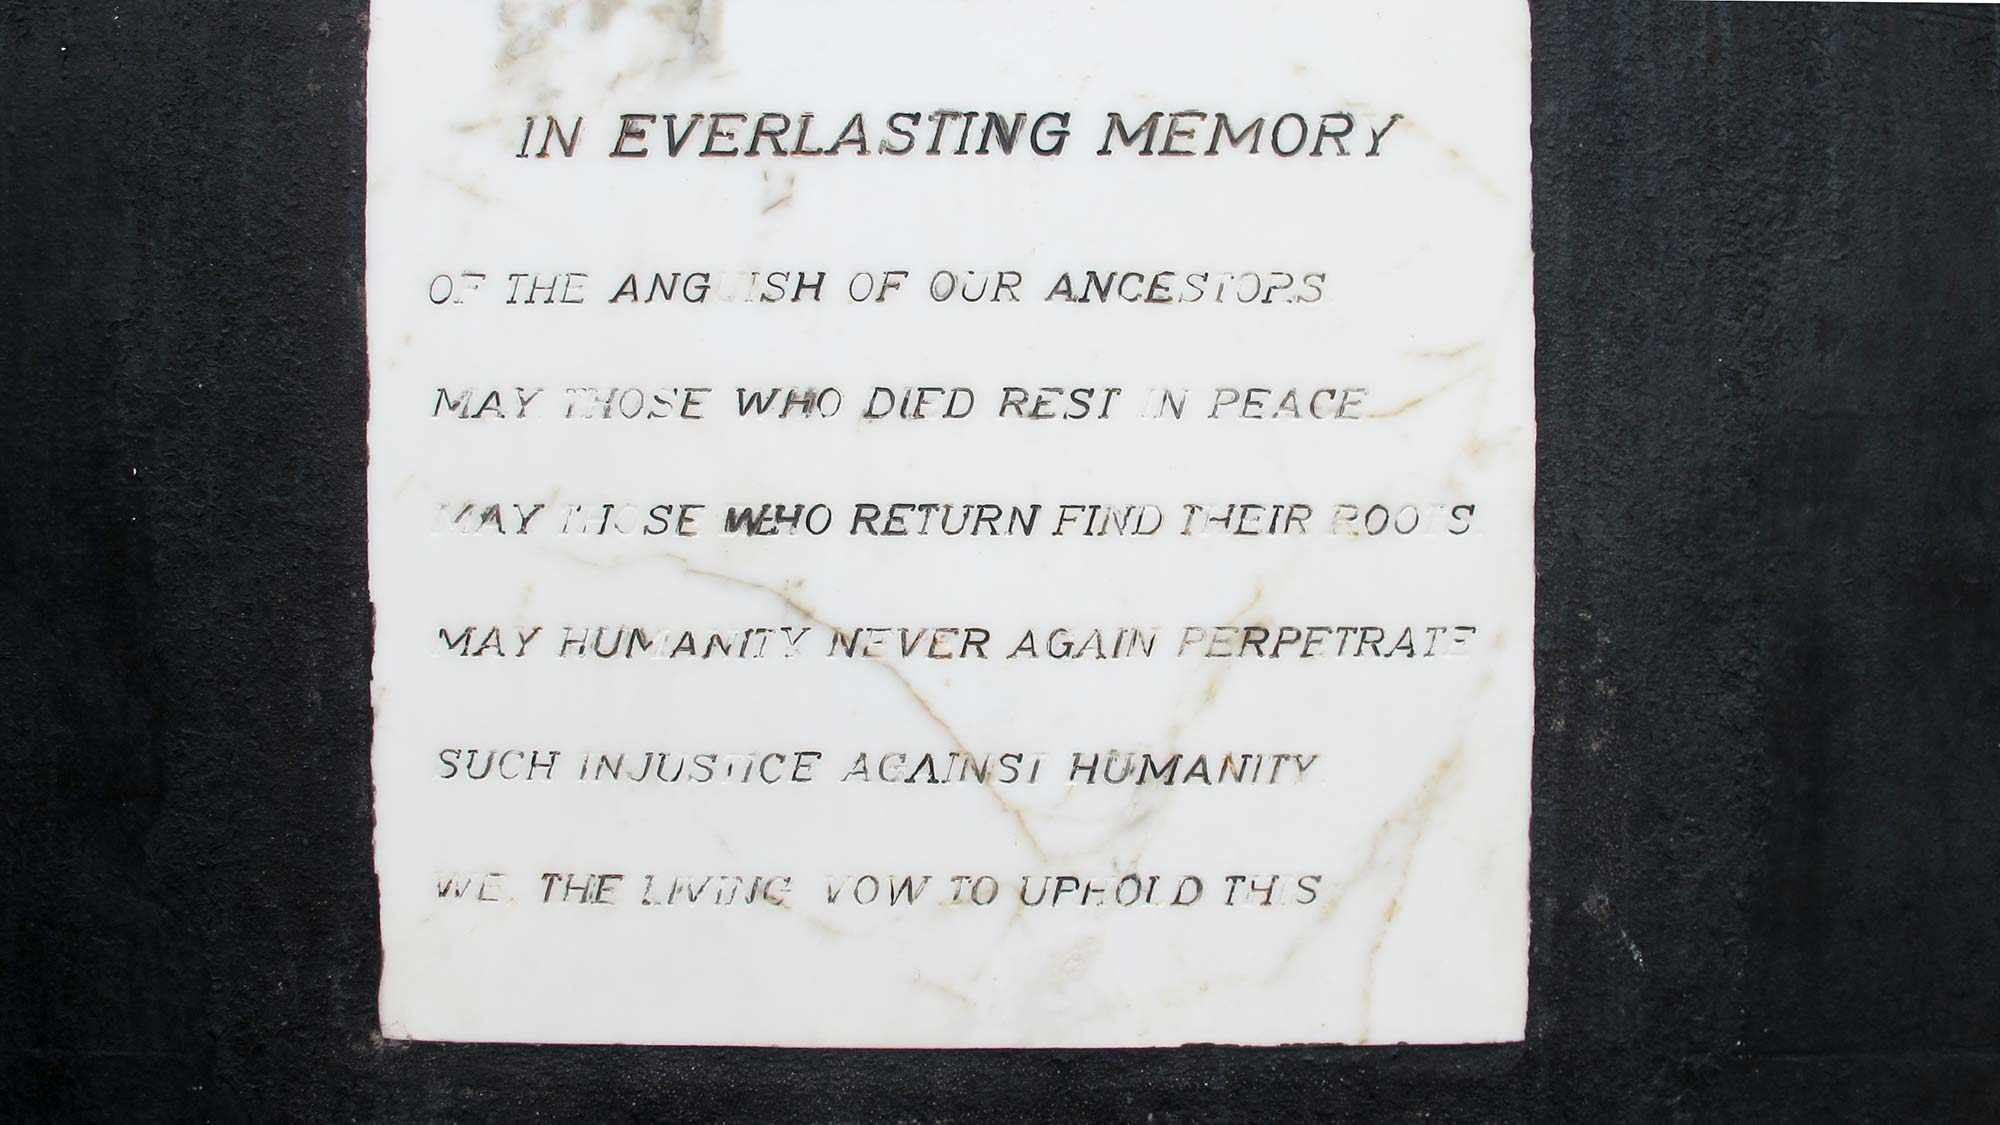 A memorial plaque reading: In Everlasting Memory of the anguish of our ancestors. May those who died rest in peace. May those who return find their roots. May humanity never again perpetrate such injustice against humanity. We the living vow to uphold this.